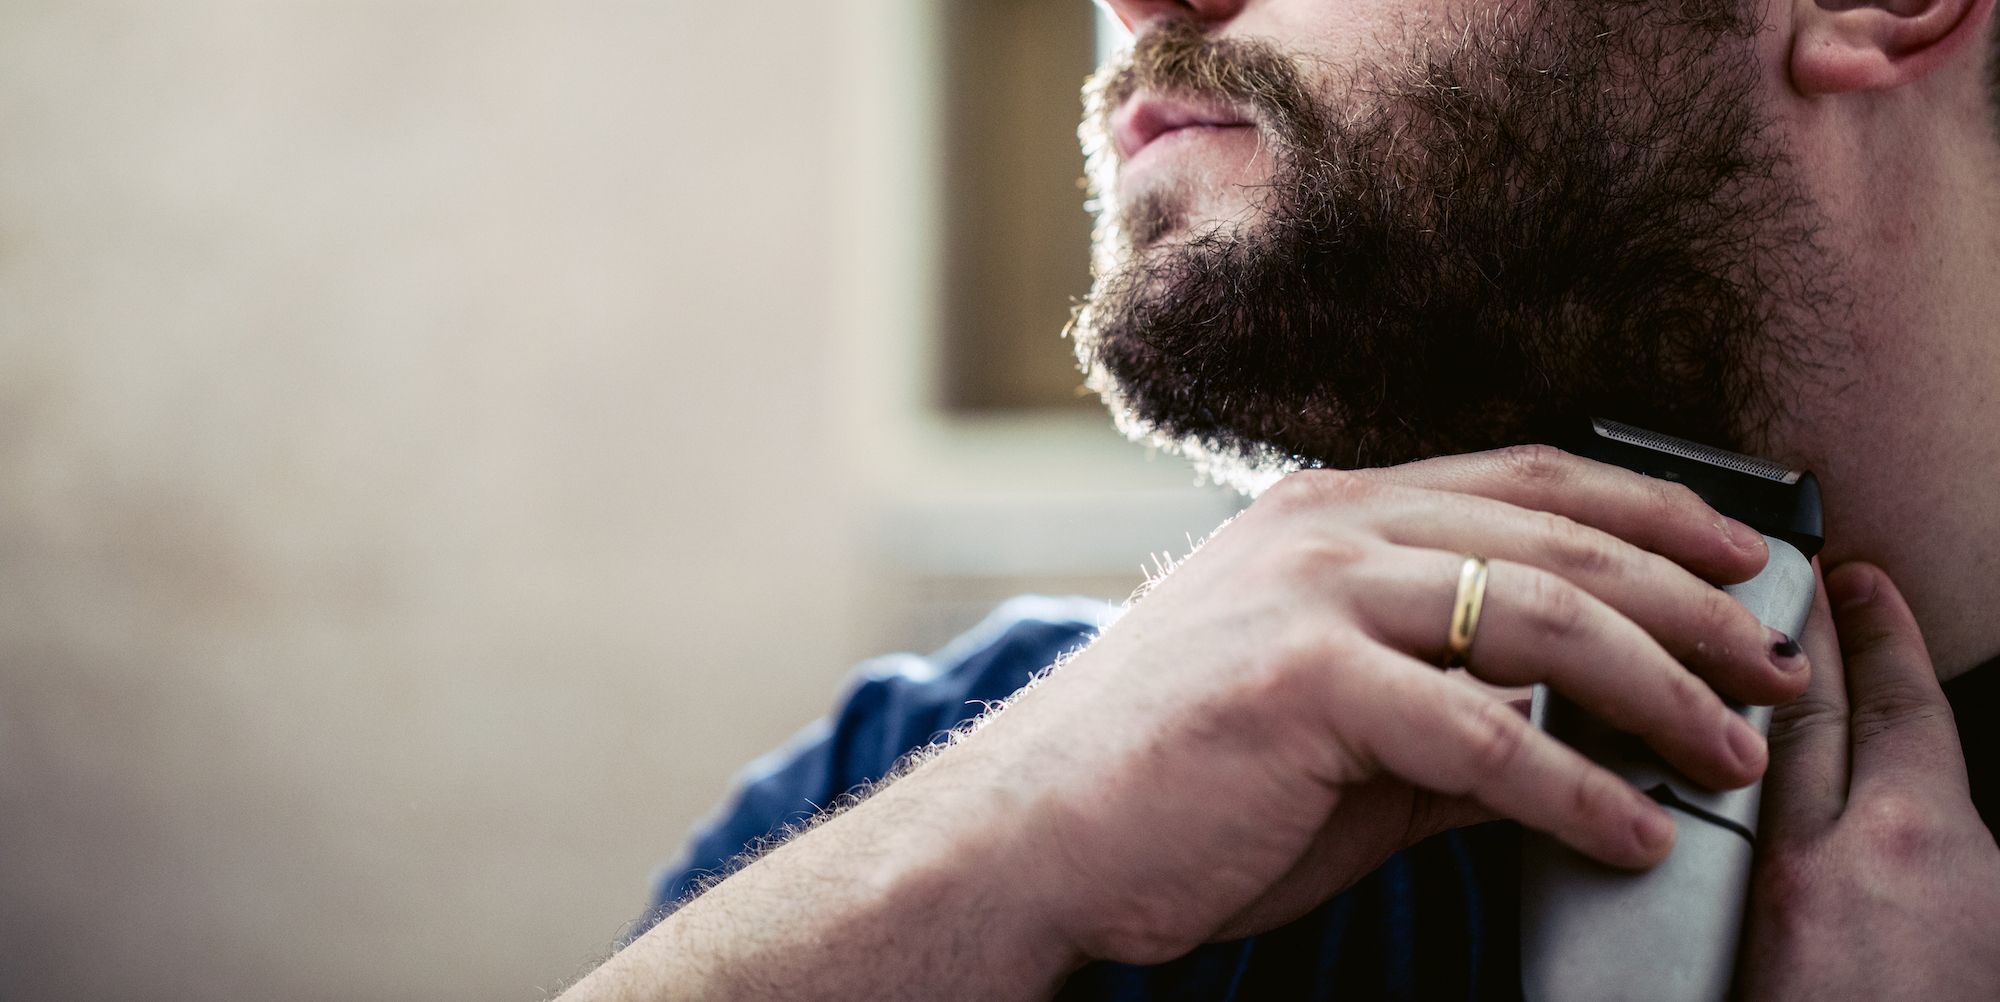 How to Trim a Beard In 8 Easy Steps